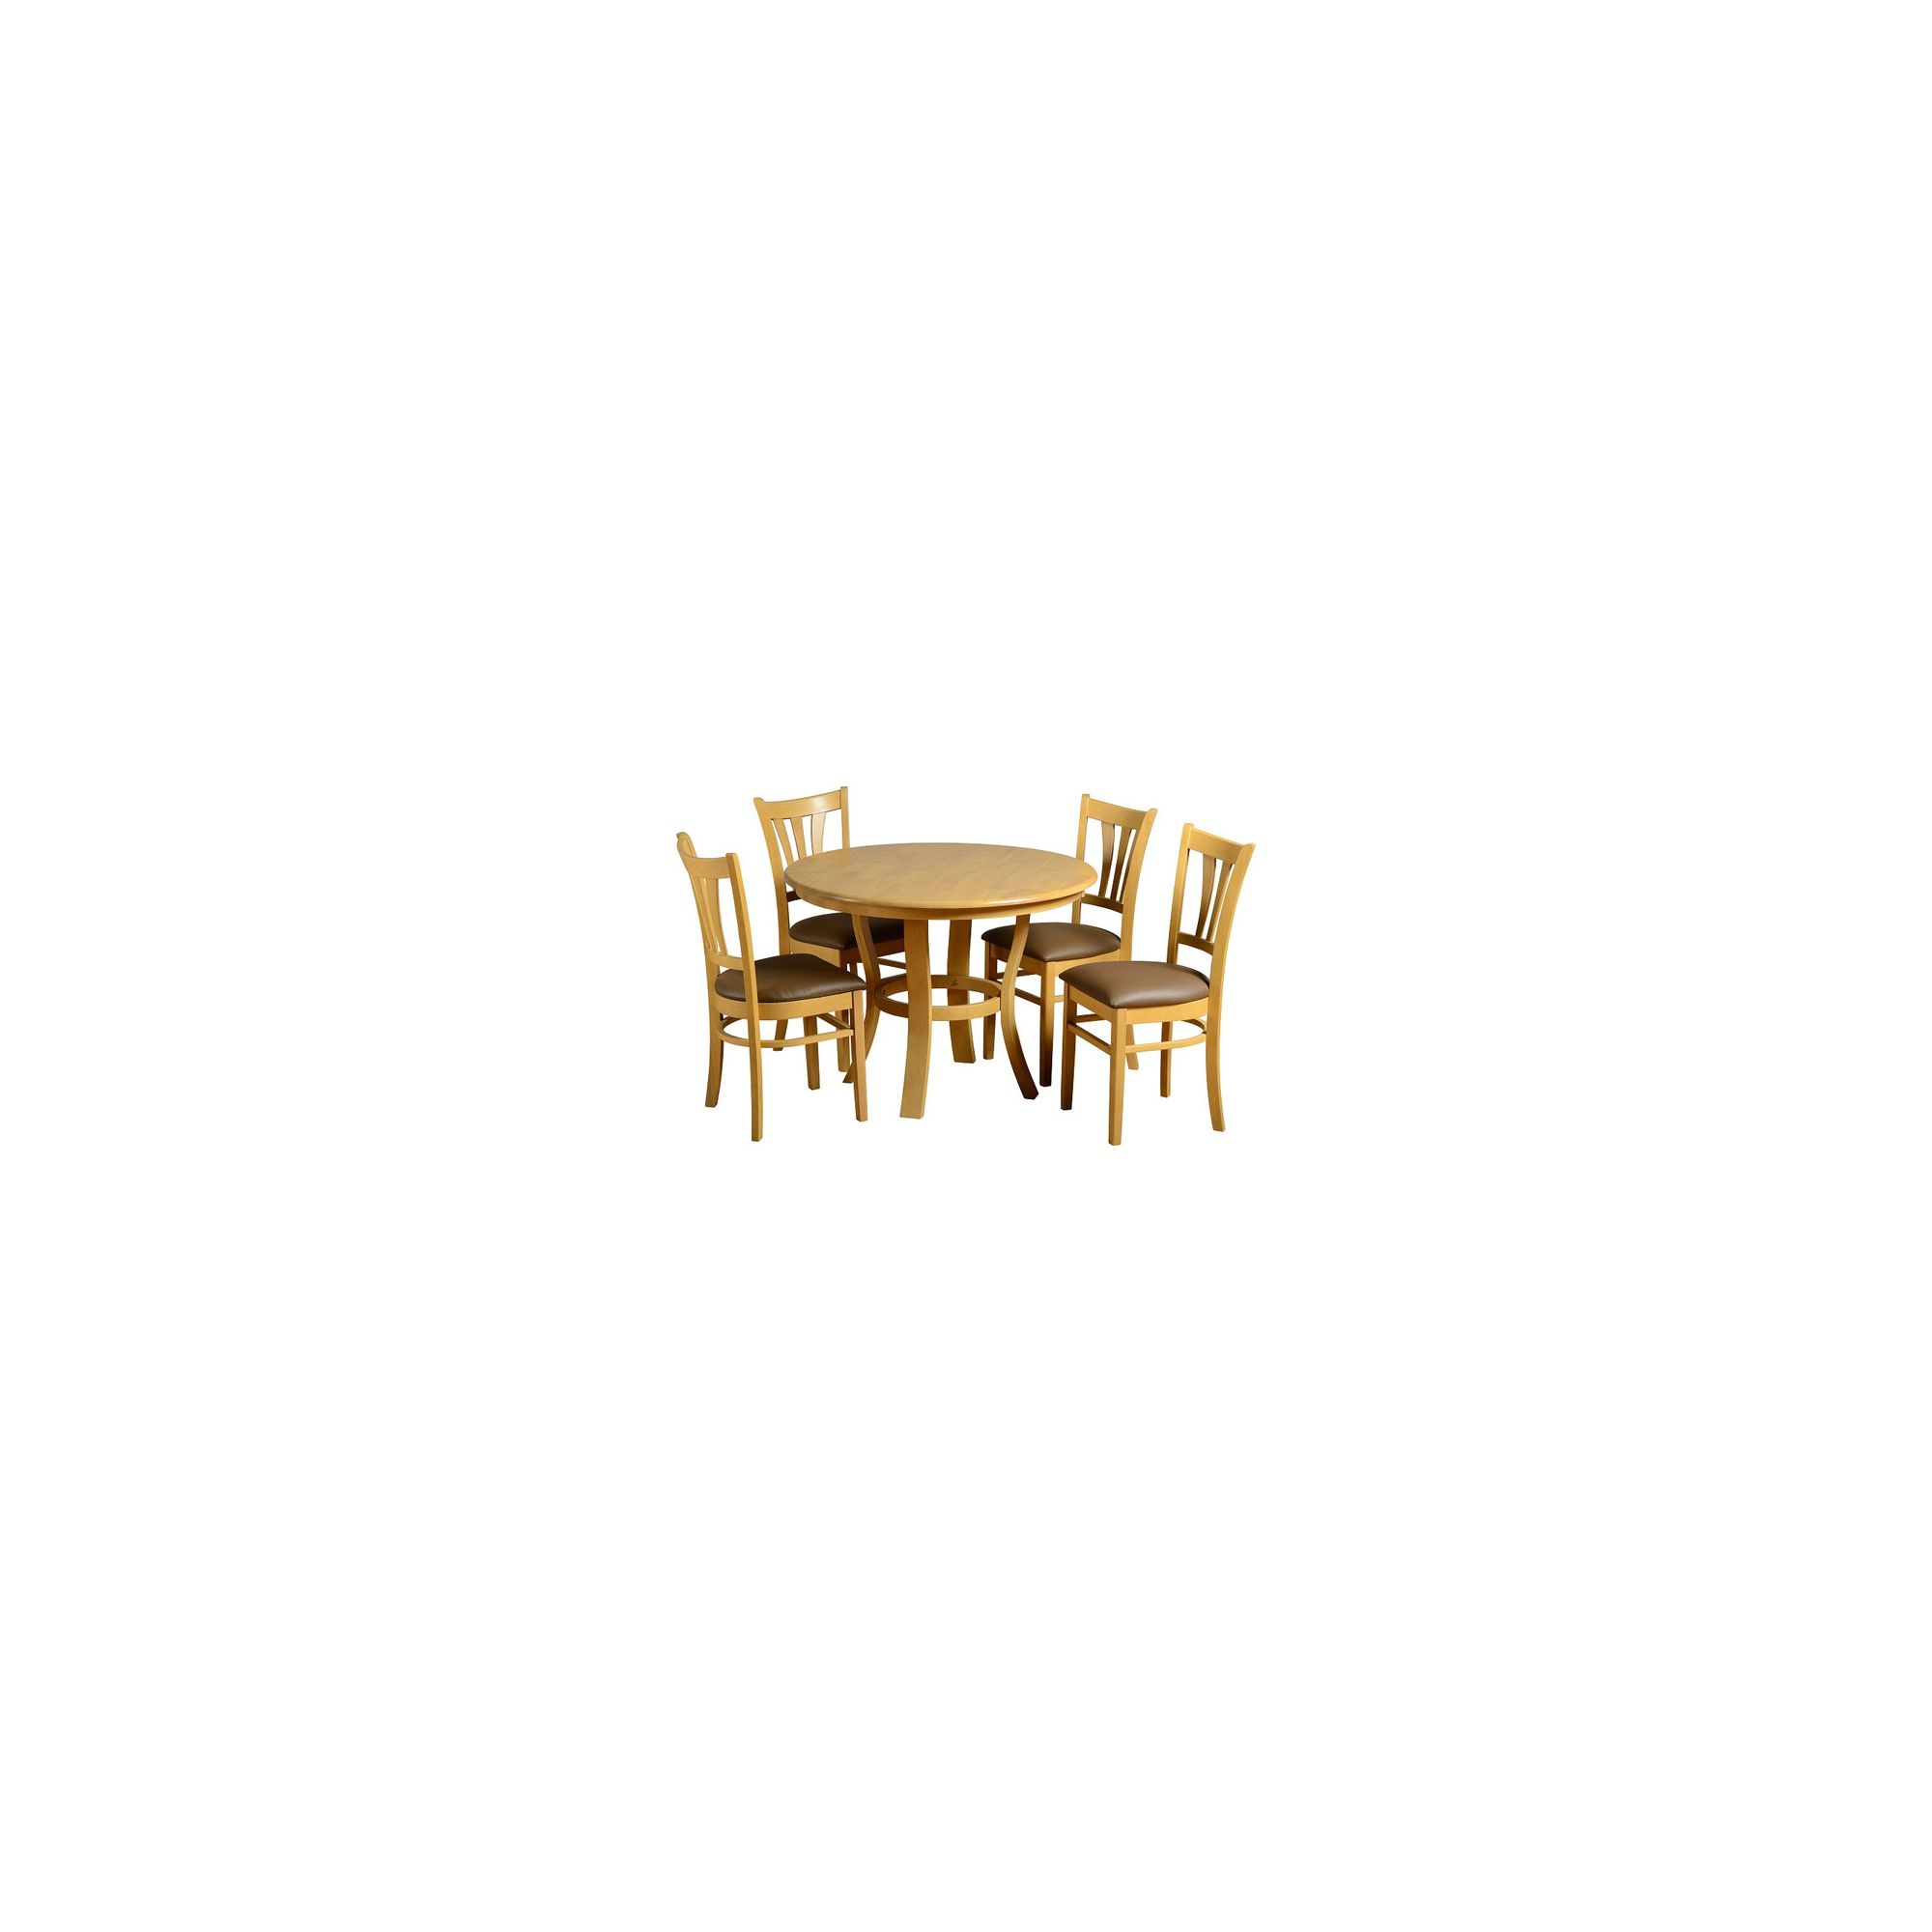 Home Essence Grosvenor Round 5 Piece Dining Set - Natural Oak Veneer at Tesco Direct